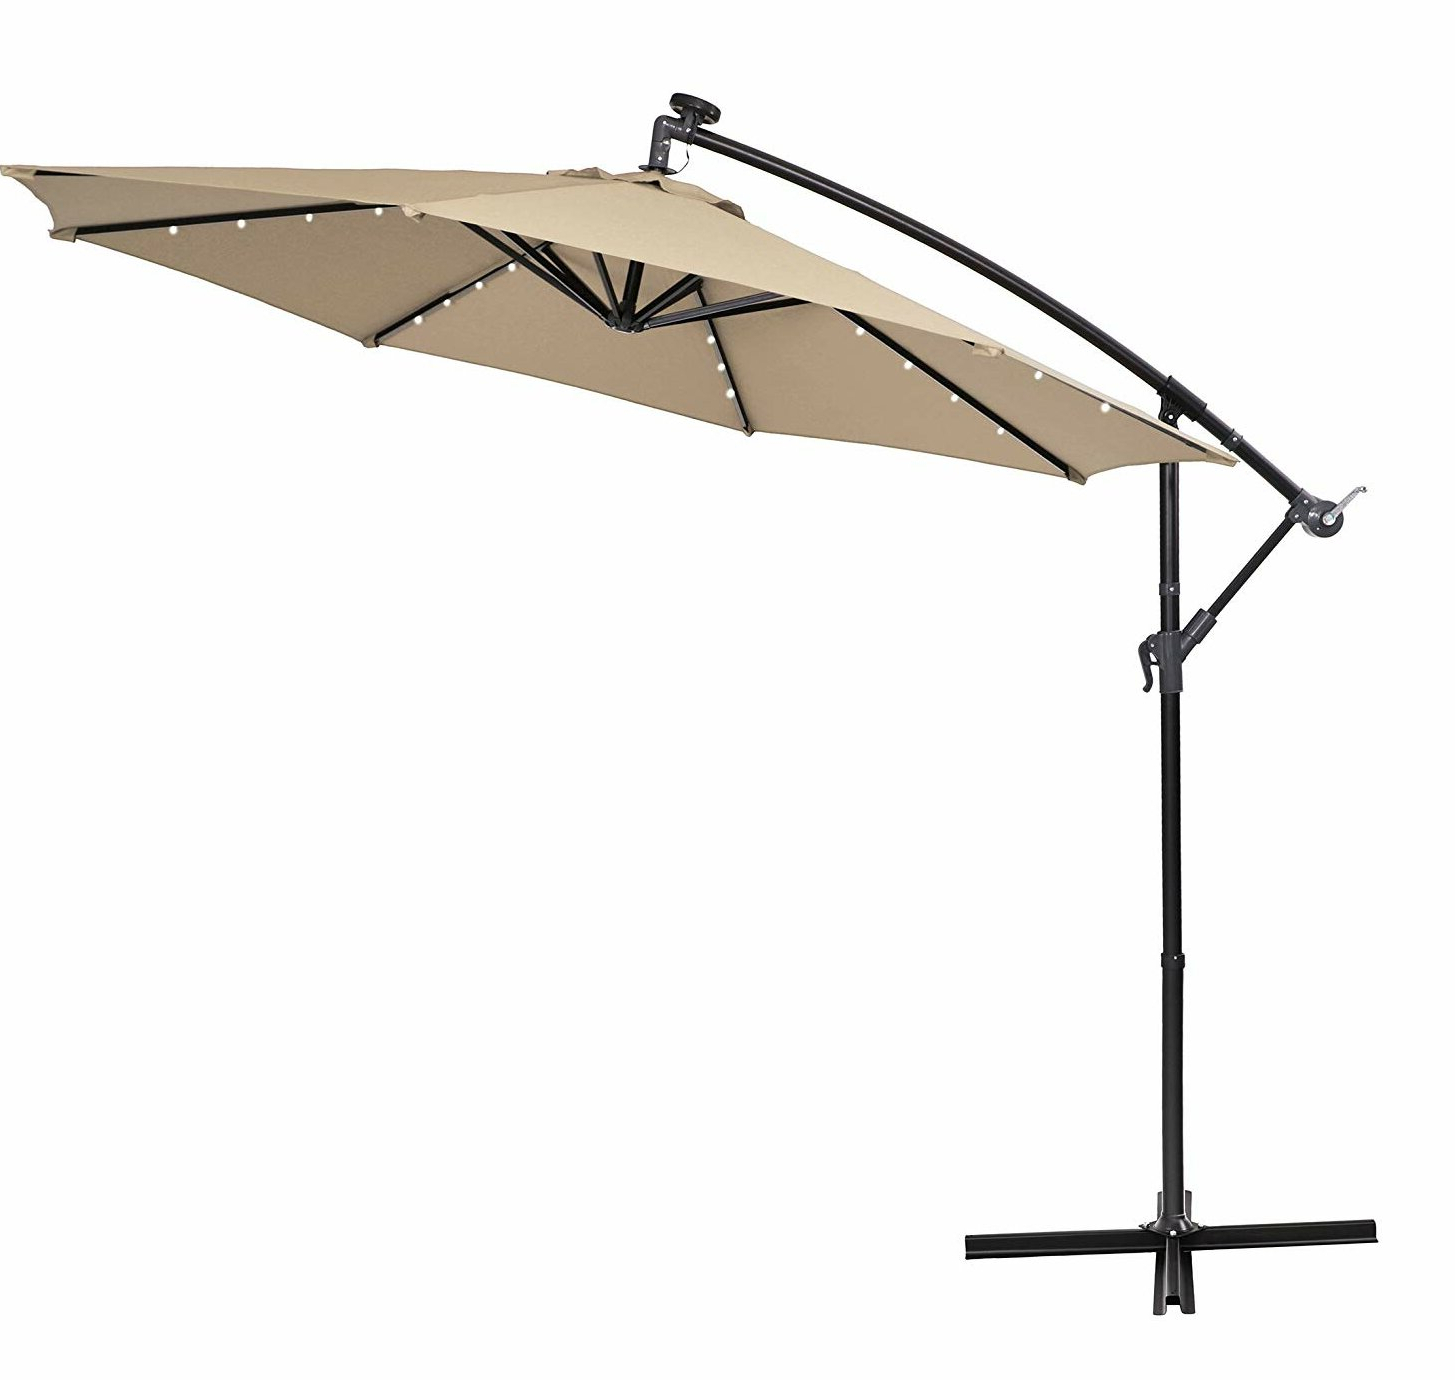 Newest Bostic 10' Cantilever Umbrella With Bostic Cantilever Umbrellas (View 1 of 20)